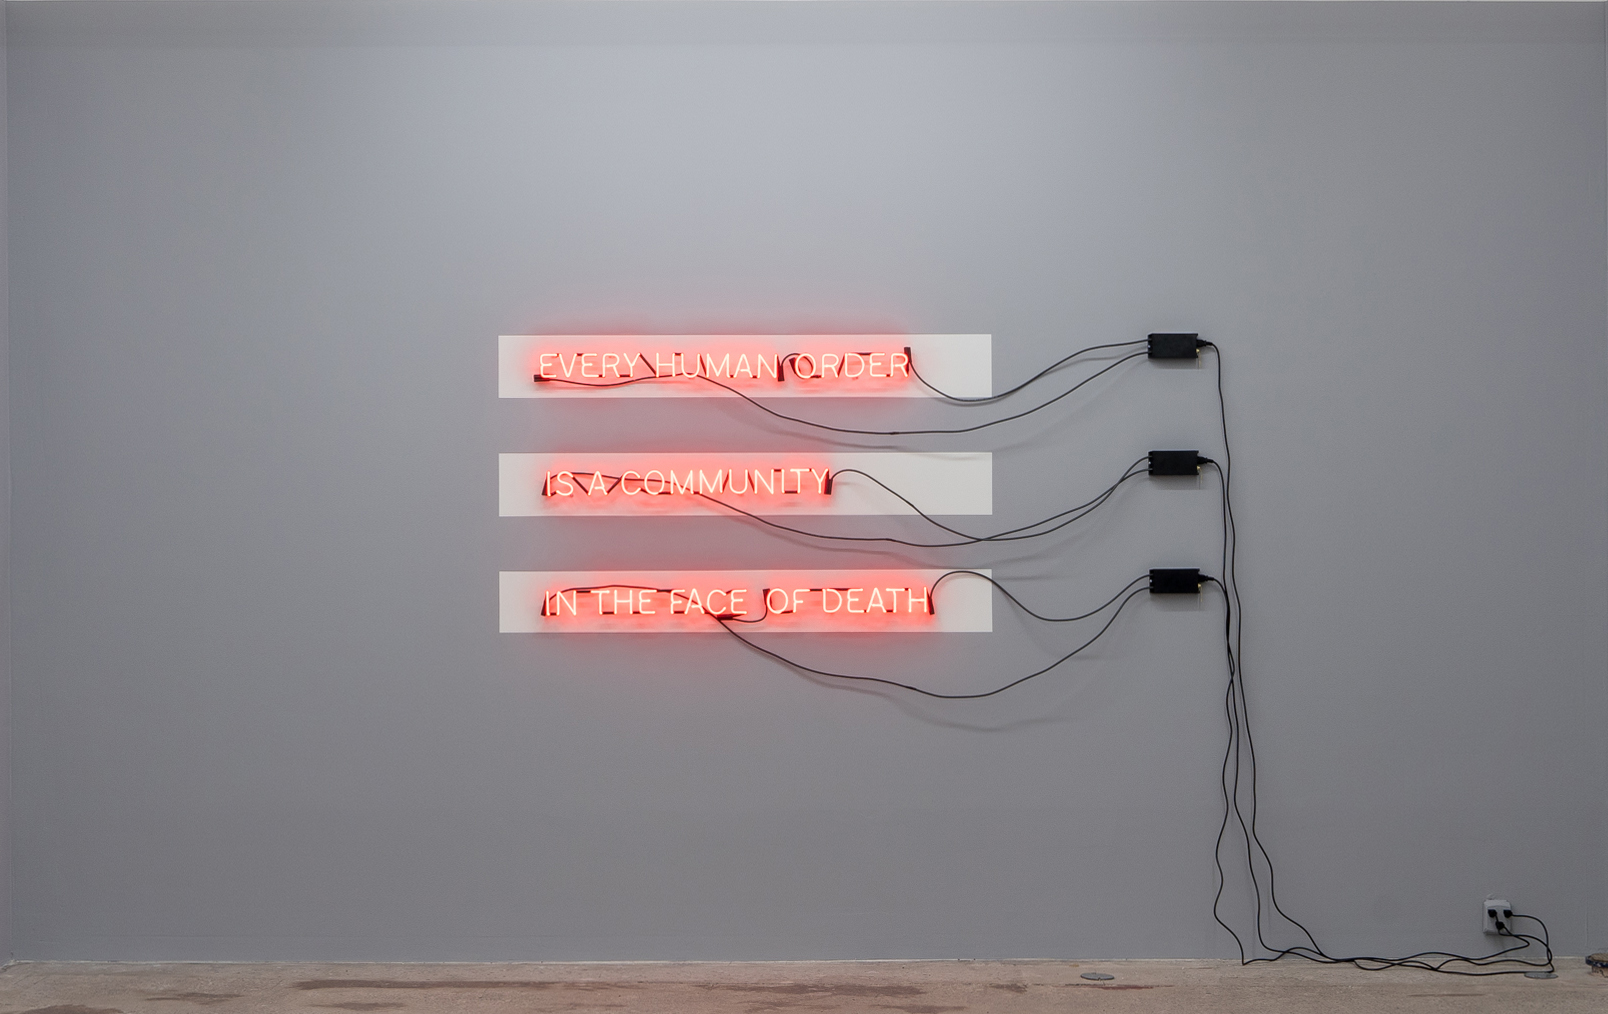 Carl Trahan,  In the Face of Death,  2018, neon sign, transformers, painting, variable dimensions.